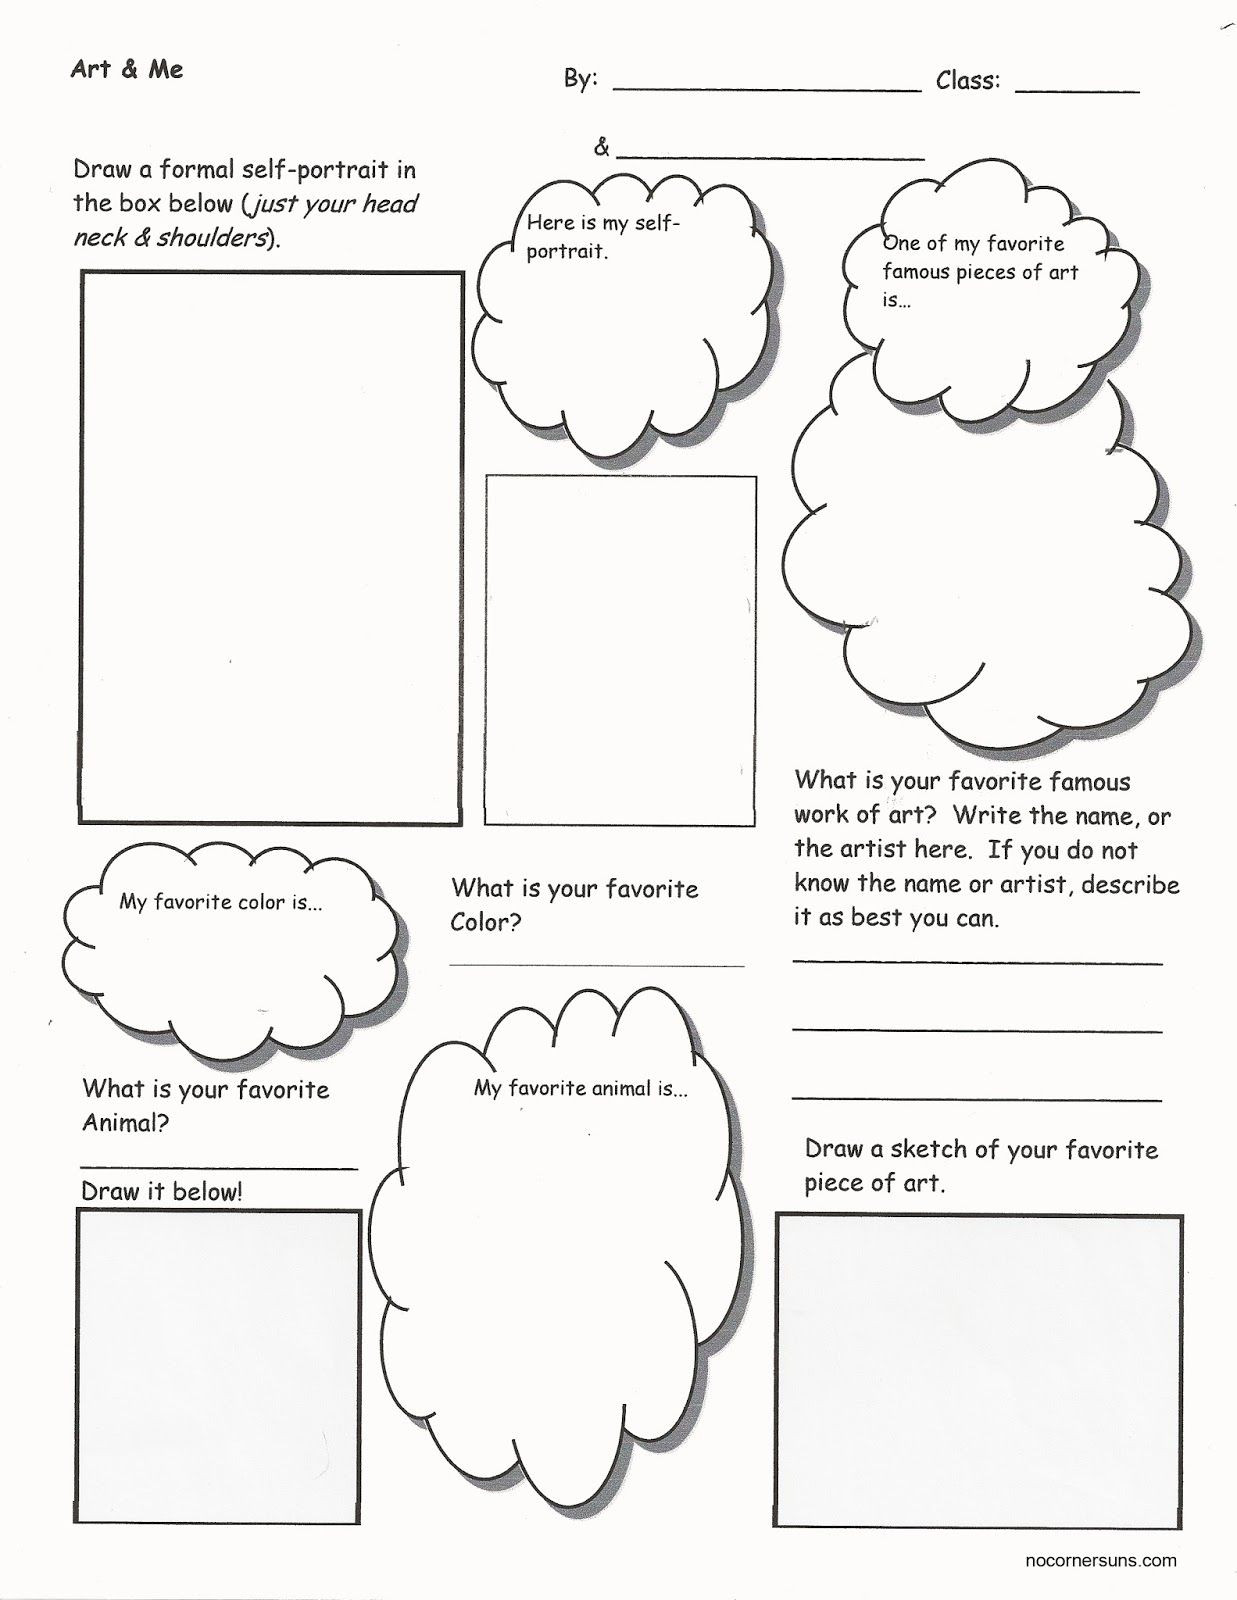 About Me Worksheet High School Worksheet For Kindergarten